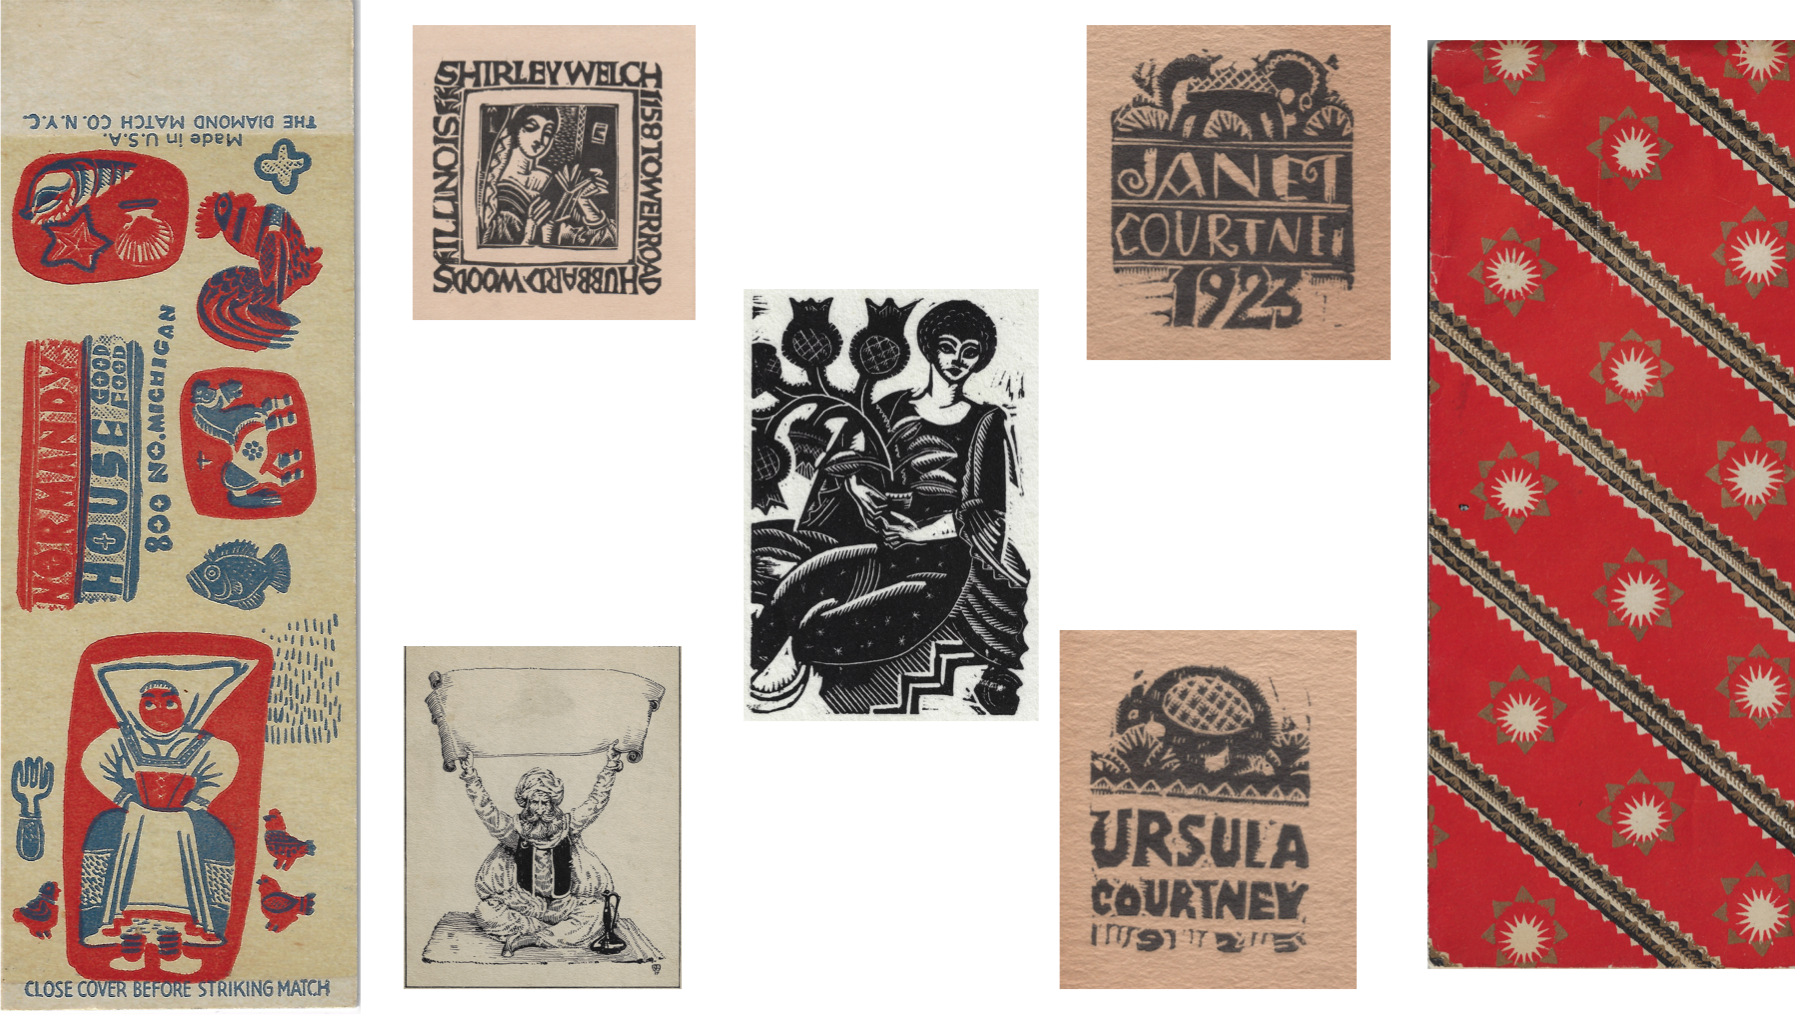 """Assorted Edgar Miller Ephemera including (clockwise from left): """"Normandy House matchbook"""", """"Shirley Welch - business card"""", """"Janet Courtney - business card"""", """"Christmas Wrapping Paper Design for Marshall Fields & Co."""", """"Ursula Courtney - business card"""", """"Genie - bookplate"""", """"Lady in Her Garden - Wood print stamp"""" (c. 1920s-30s)"""